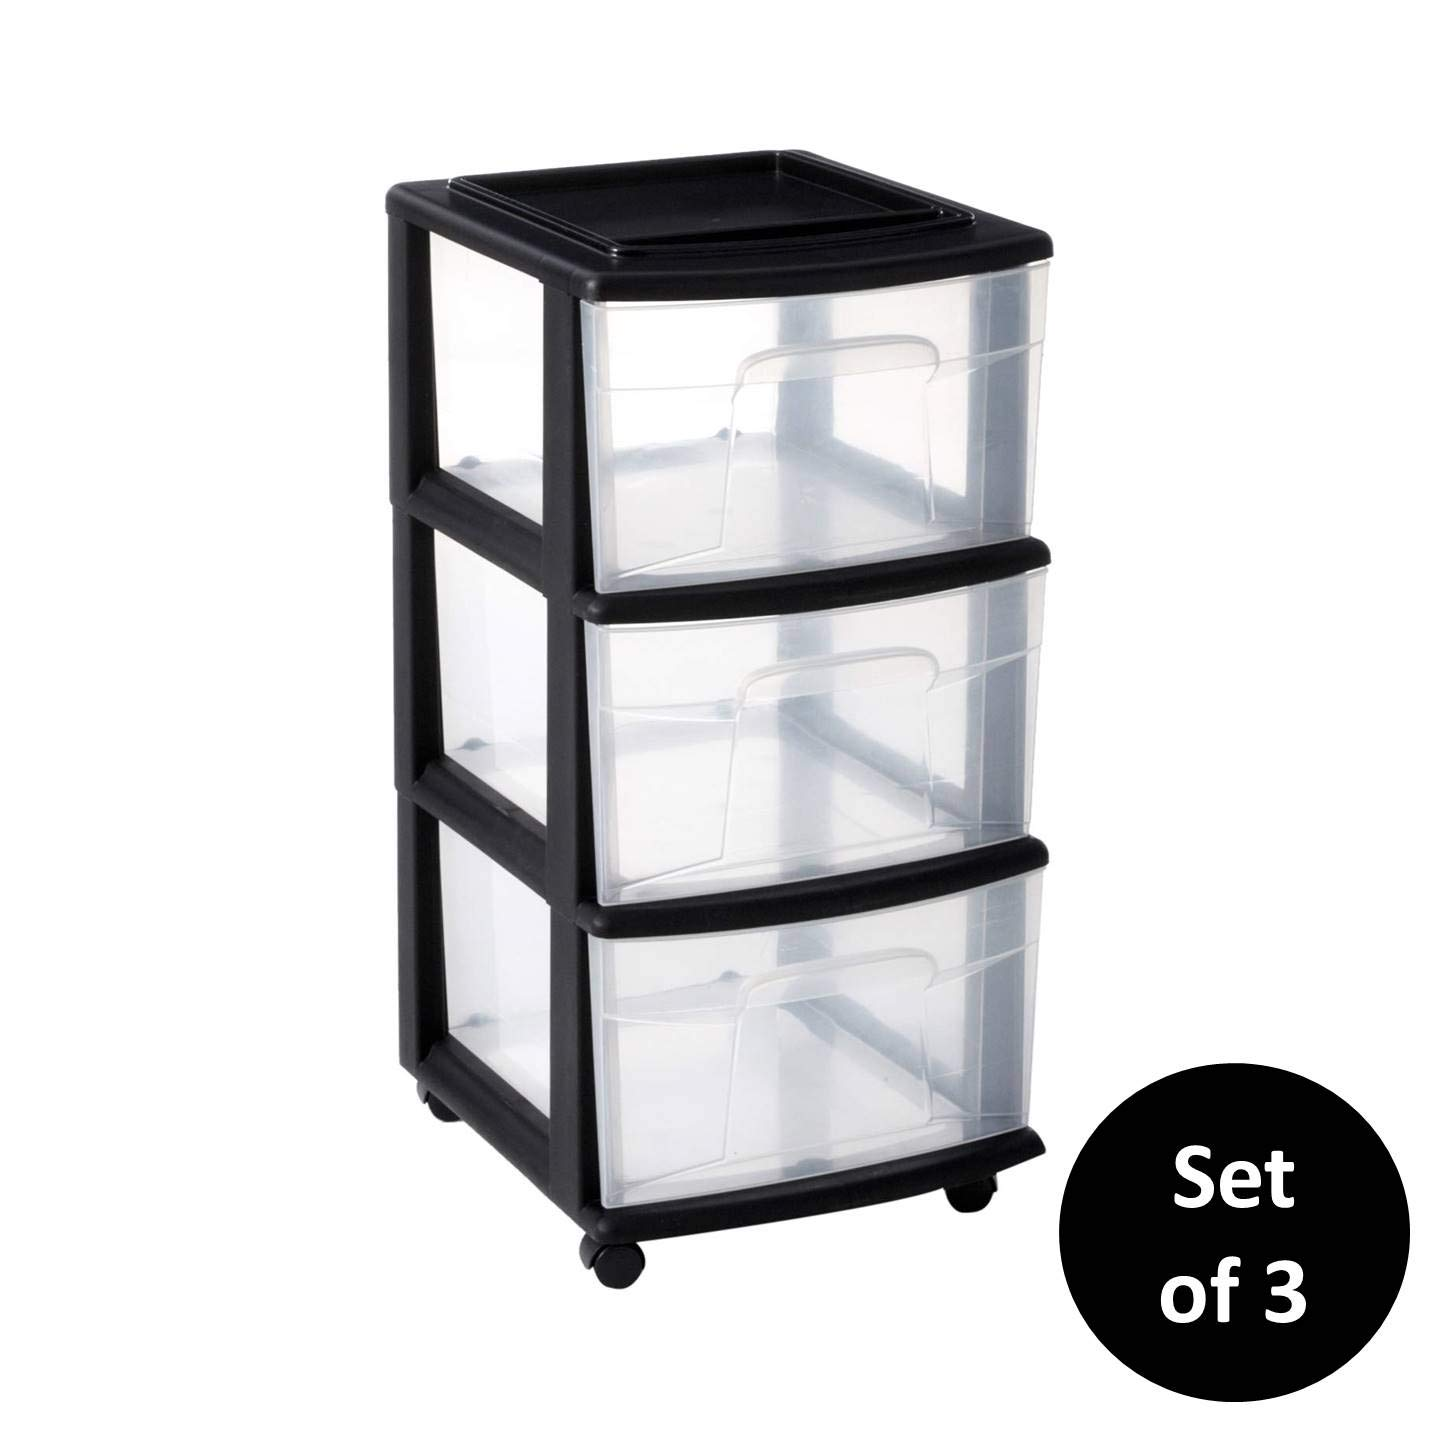 Homz Plastic 3 Drawer Medium Cart, Black Frame, Clear Drawers, Casters Included, Set of 3